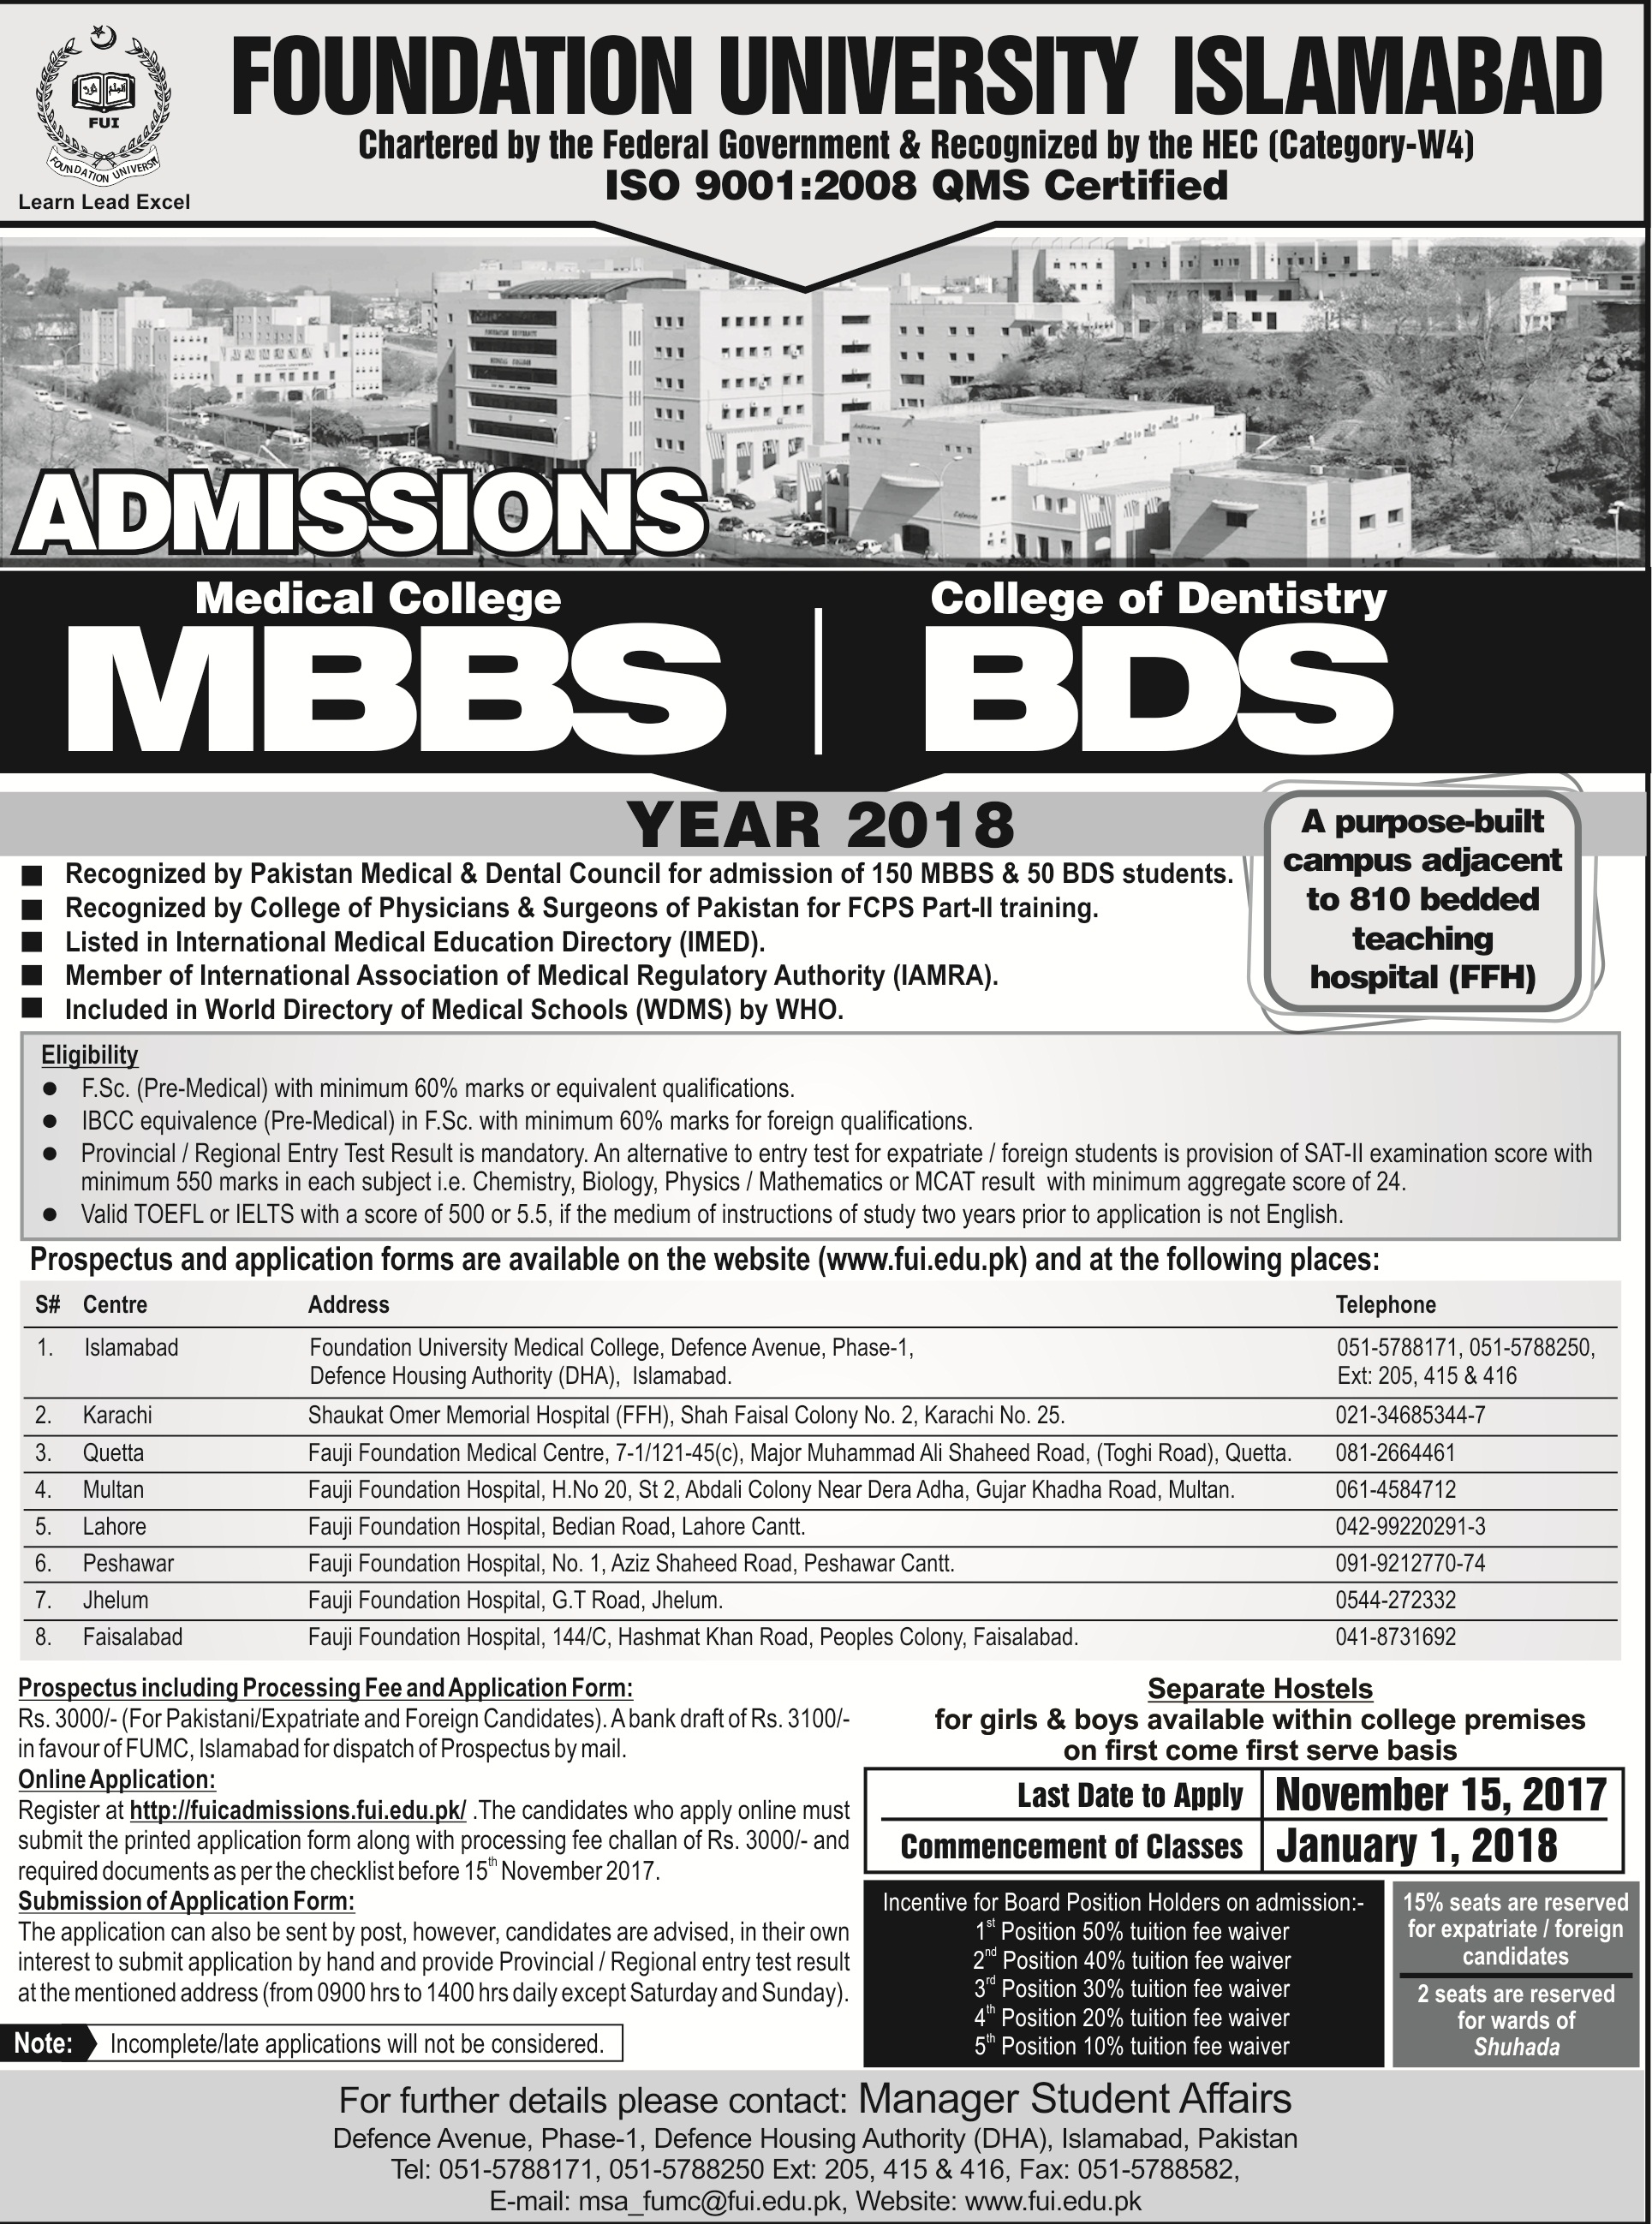 Foundation University Medical College MBBS Admissions 2017-2018